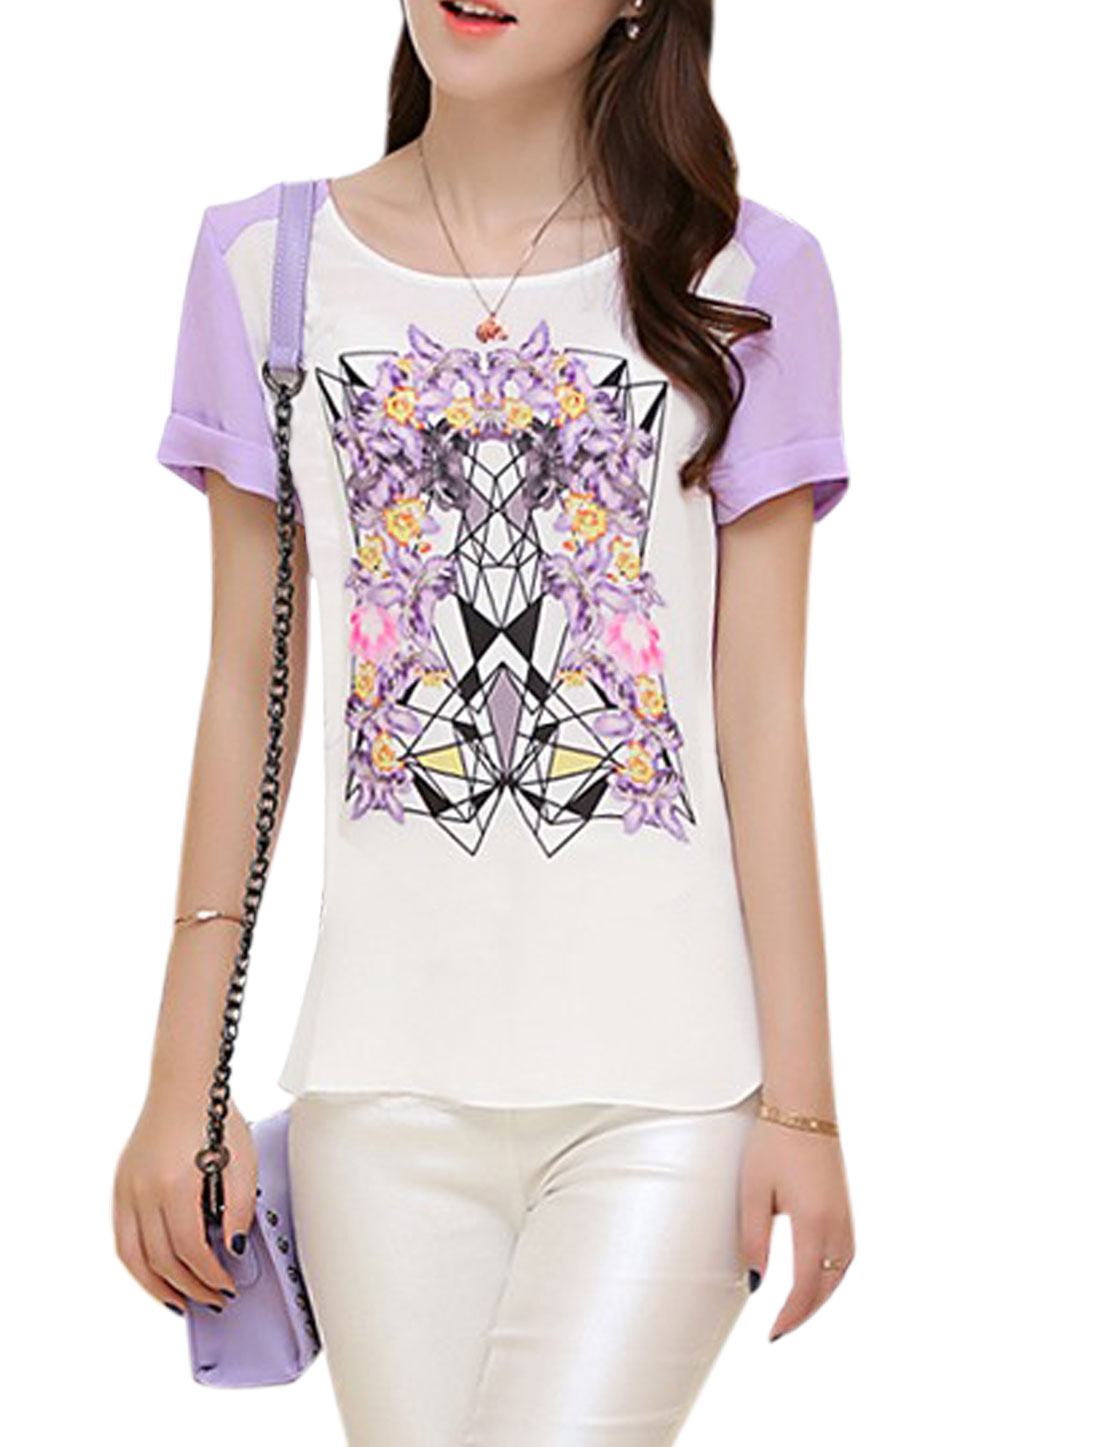 Lady Short Sleeve Geometric Prints Colorblock Chiffon Top White Lavender S